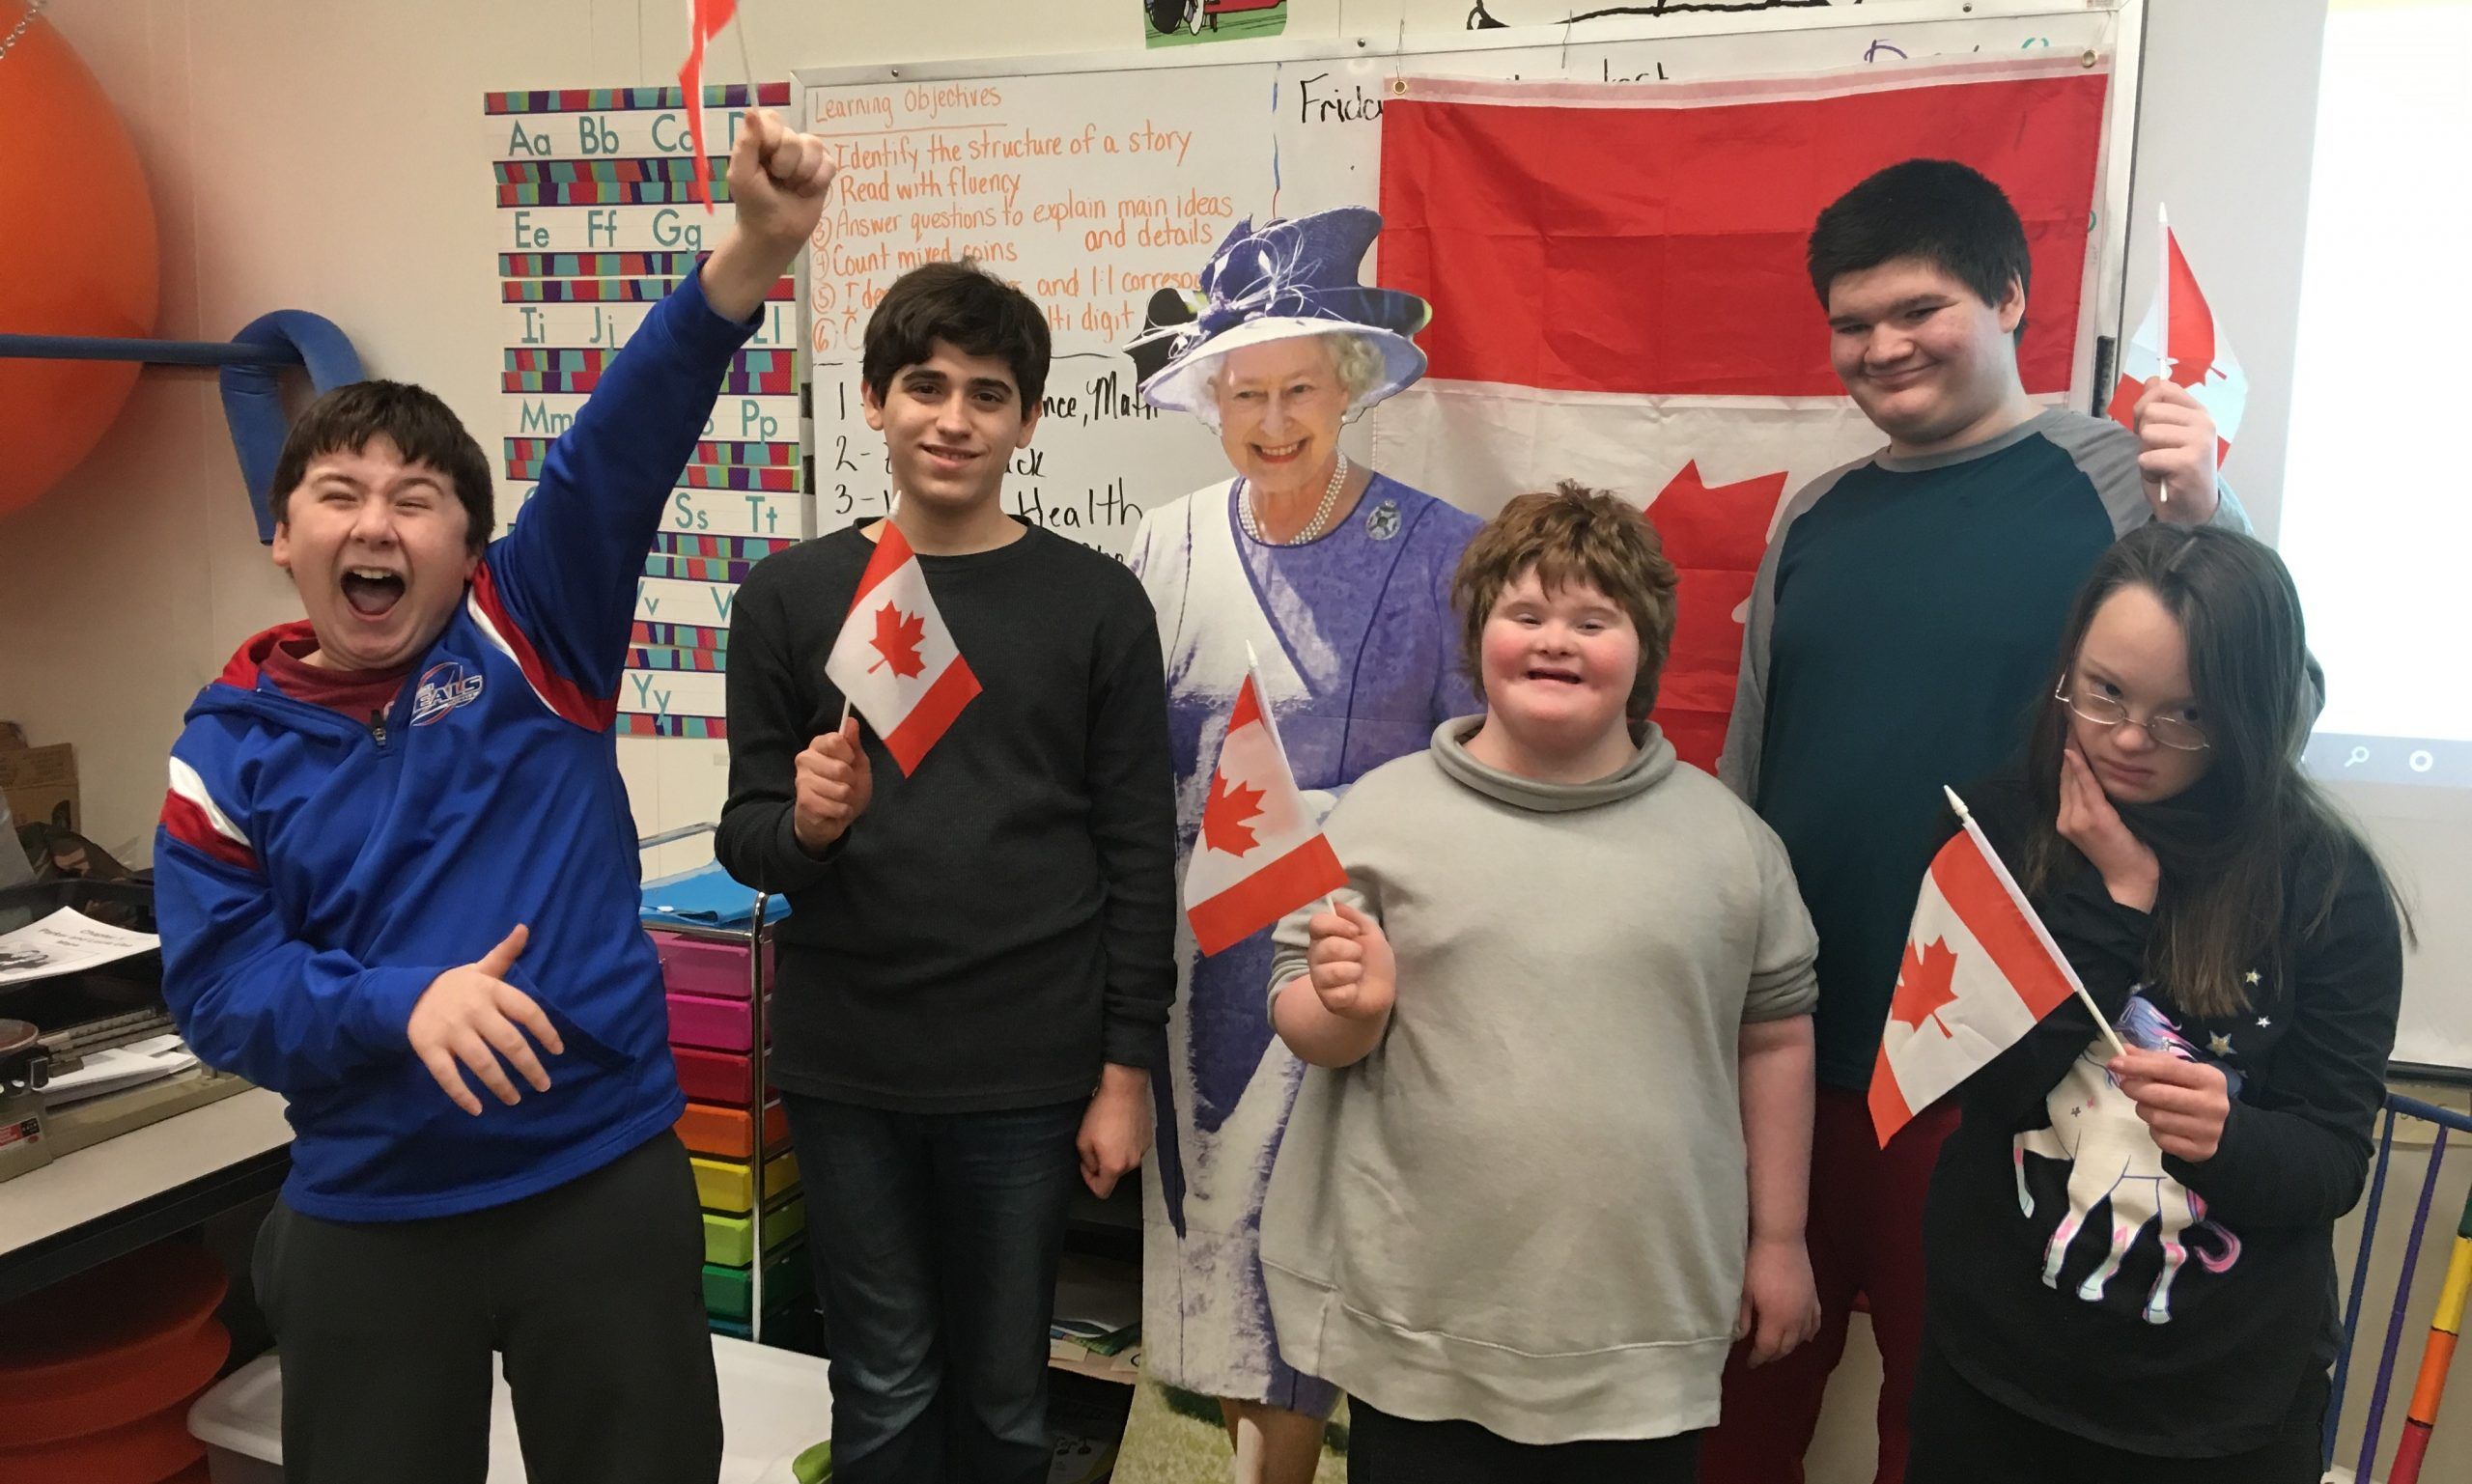 Mrs. Smith's middle school class gets a visit from The Queen of England as they learn about travels in Canada.